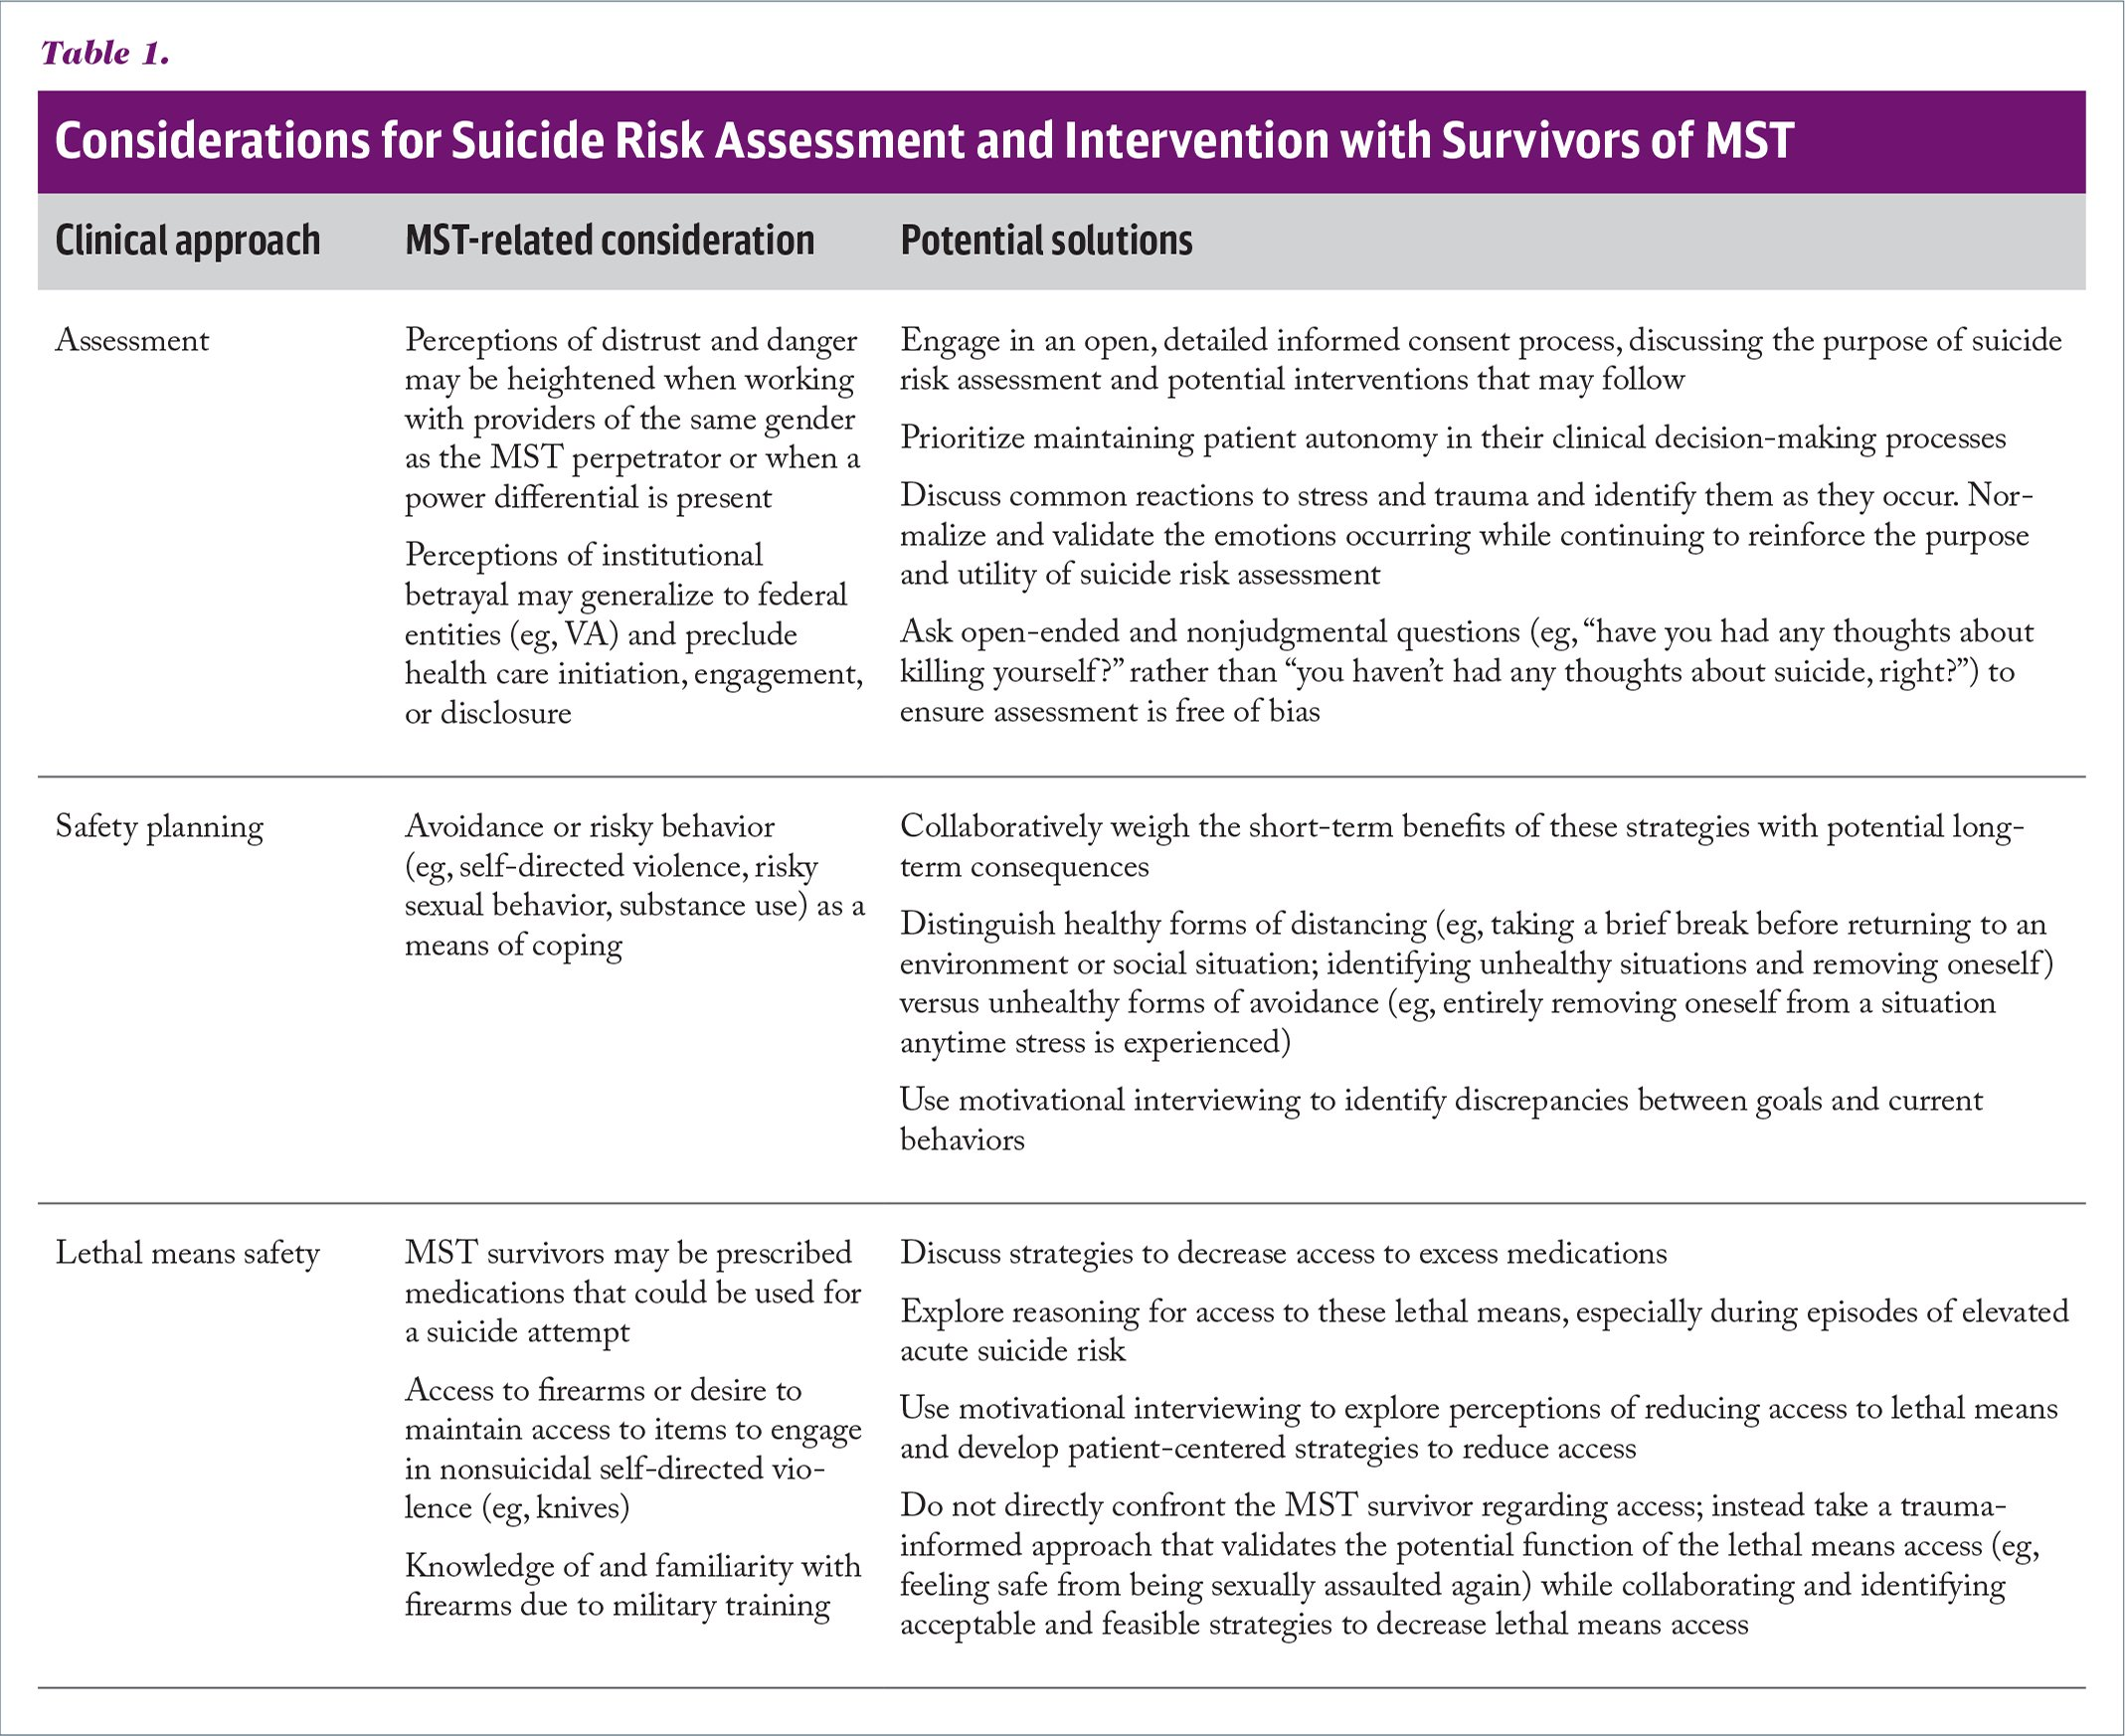 Considerations for Suicide Risk Assessment and Intervention with Survivors of MST